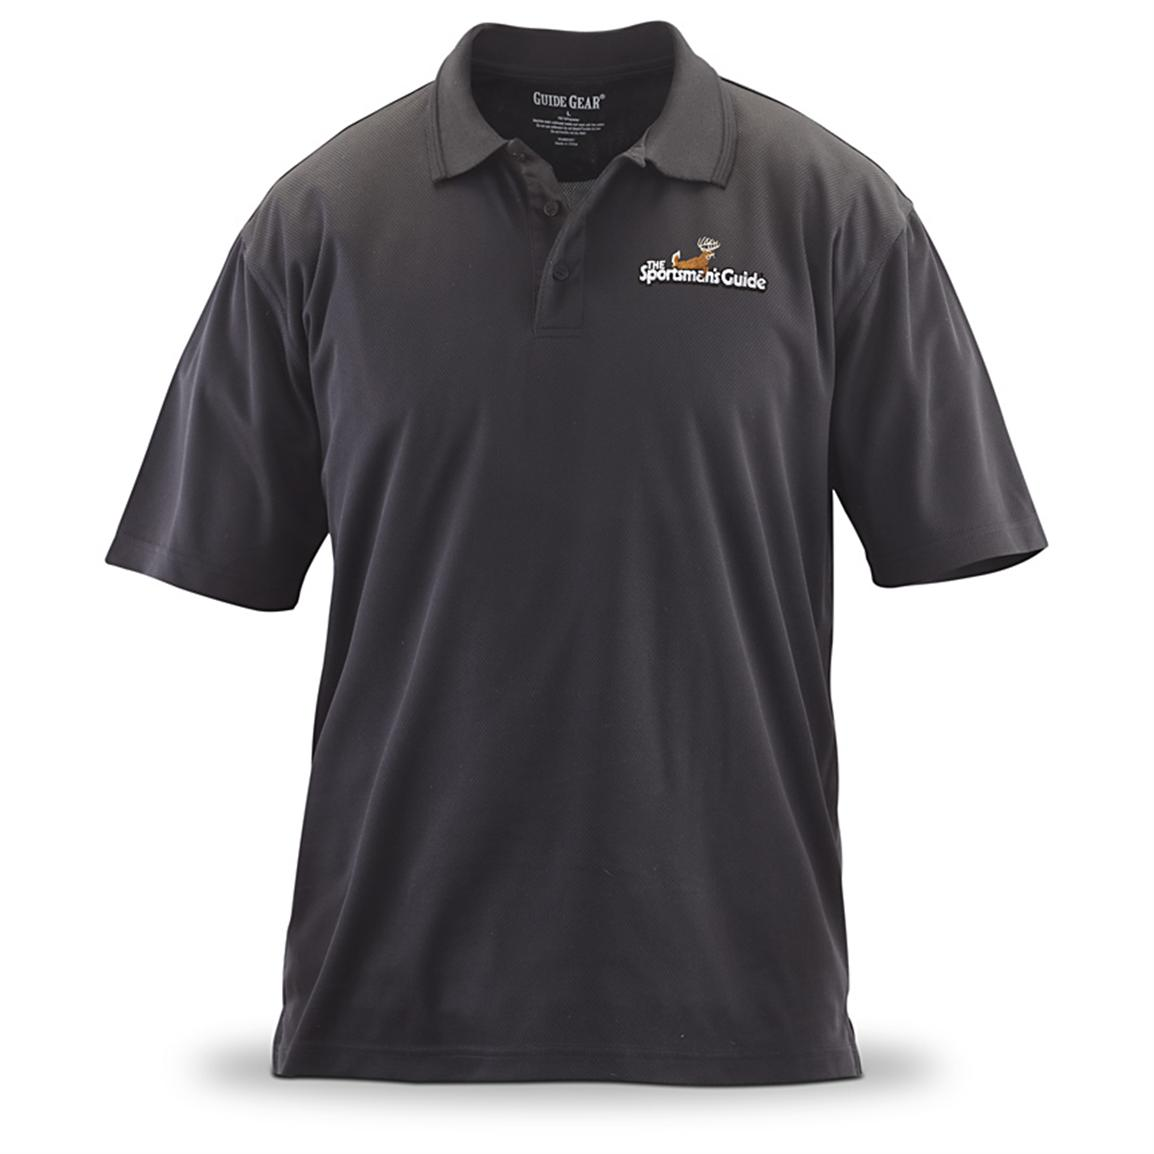 Men's Sportsman's Guide® Logo Performance Polo Shirt, Black